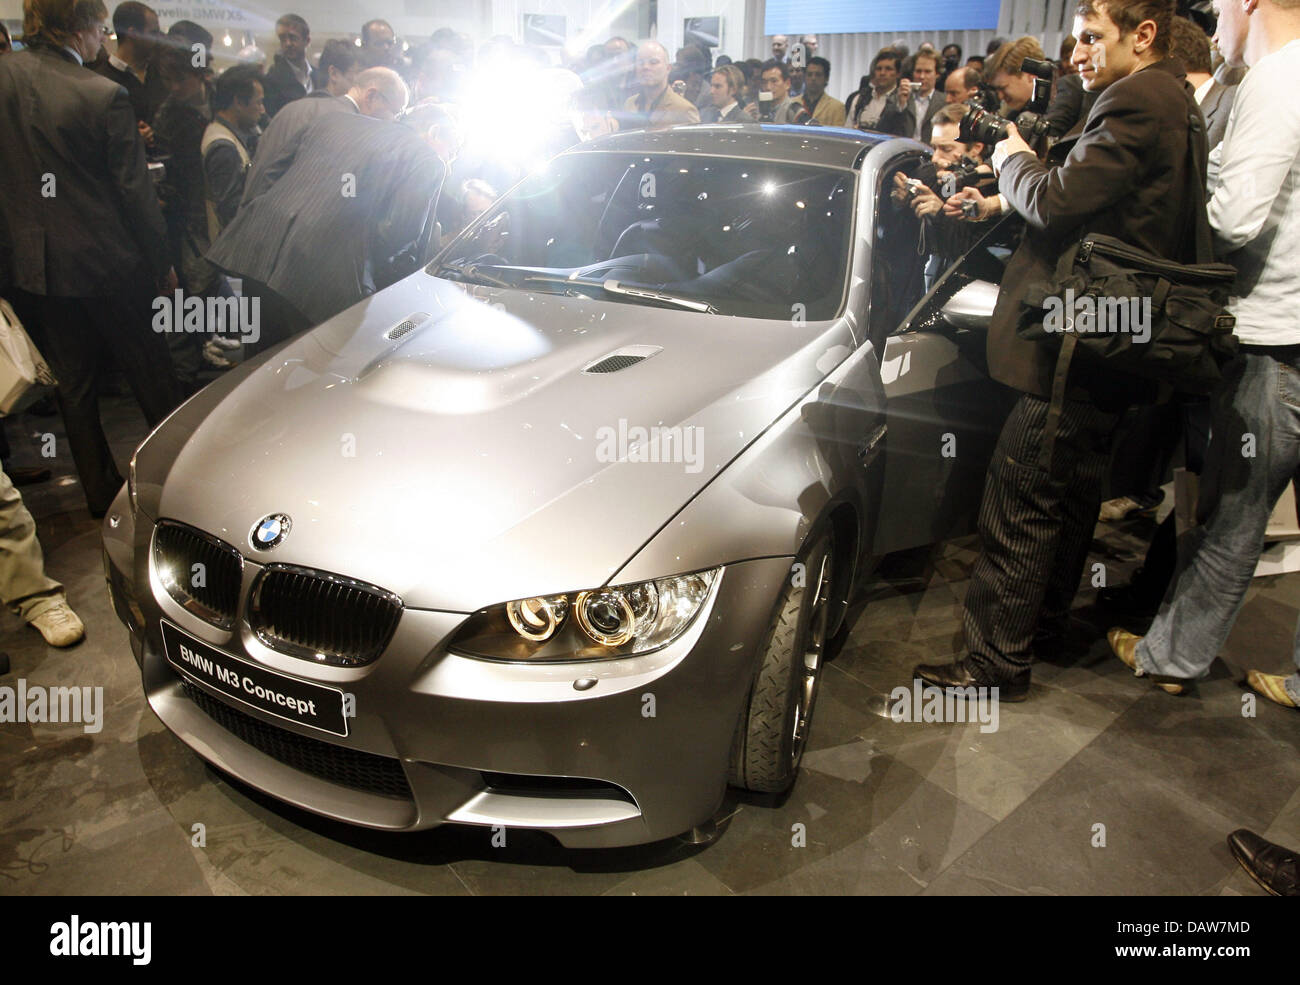 The new BMW M3 Concept is presented at the Geneva Motor Show in ...